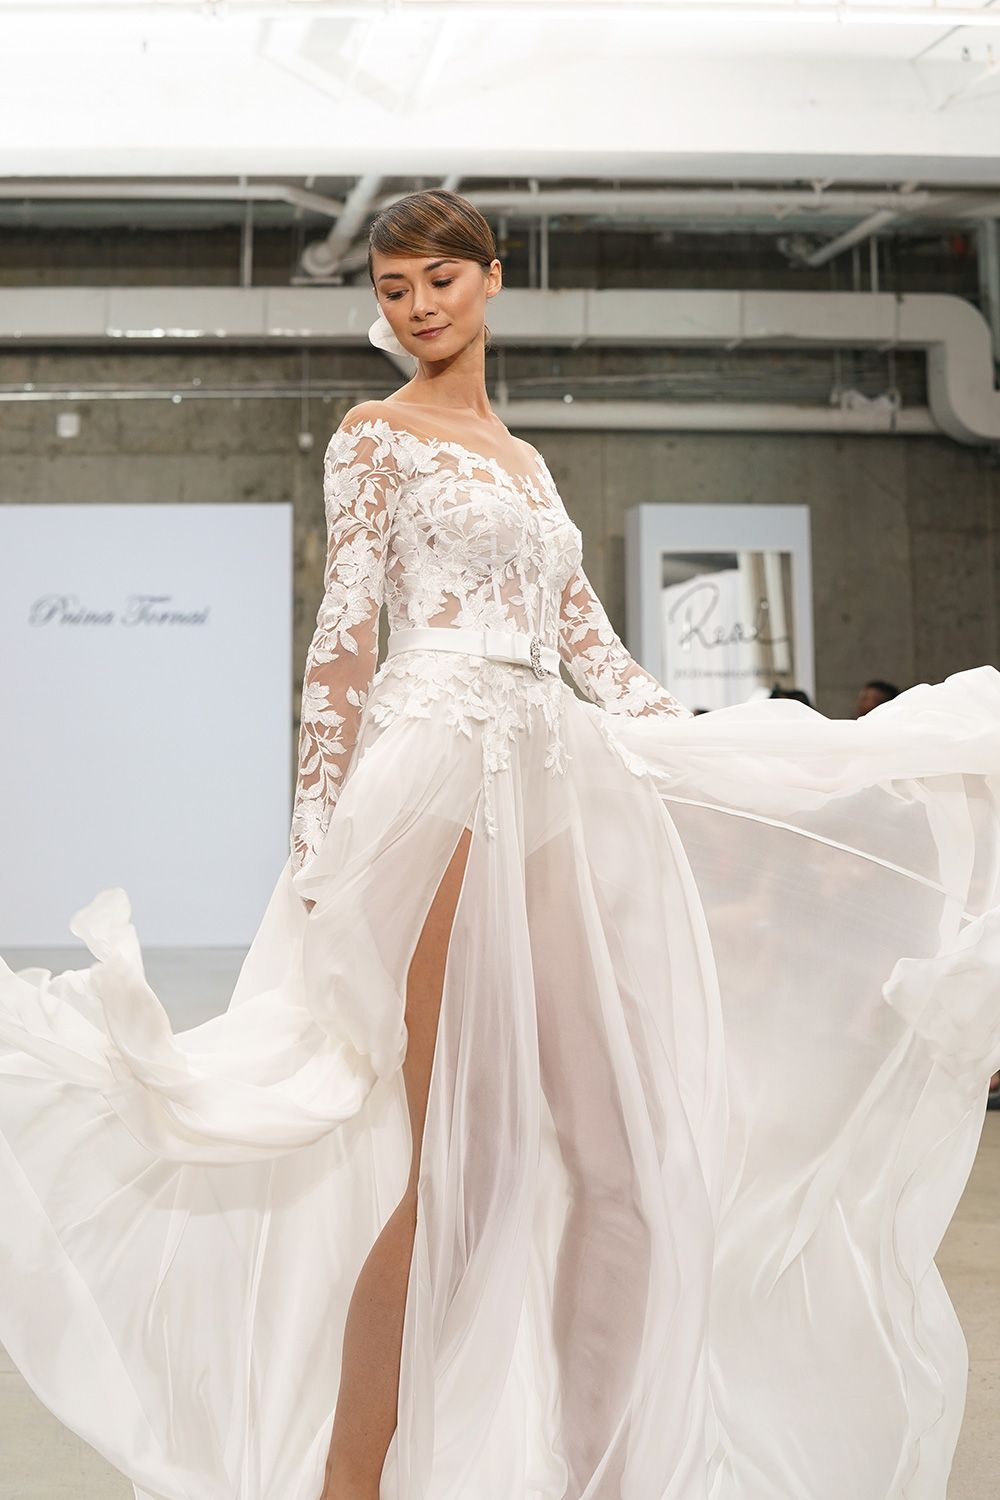 Top 8 Chic 2020 Wedding Dress Trends Wedding dress